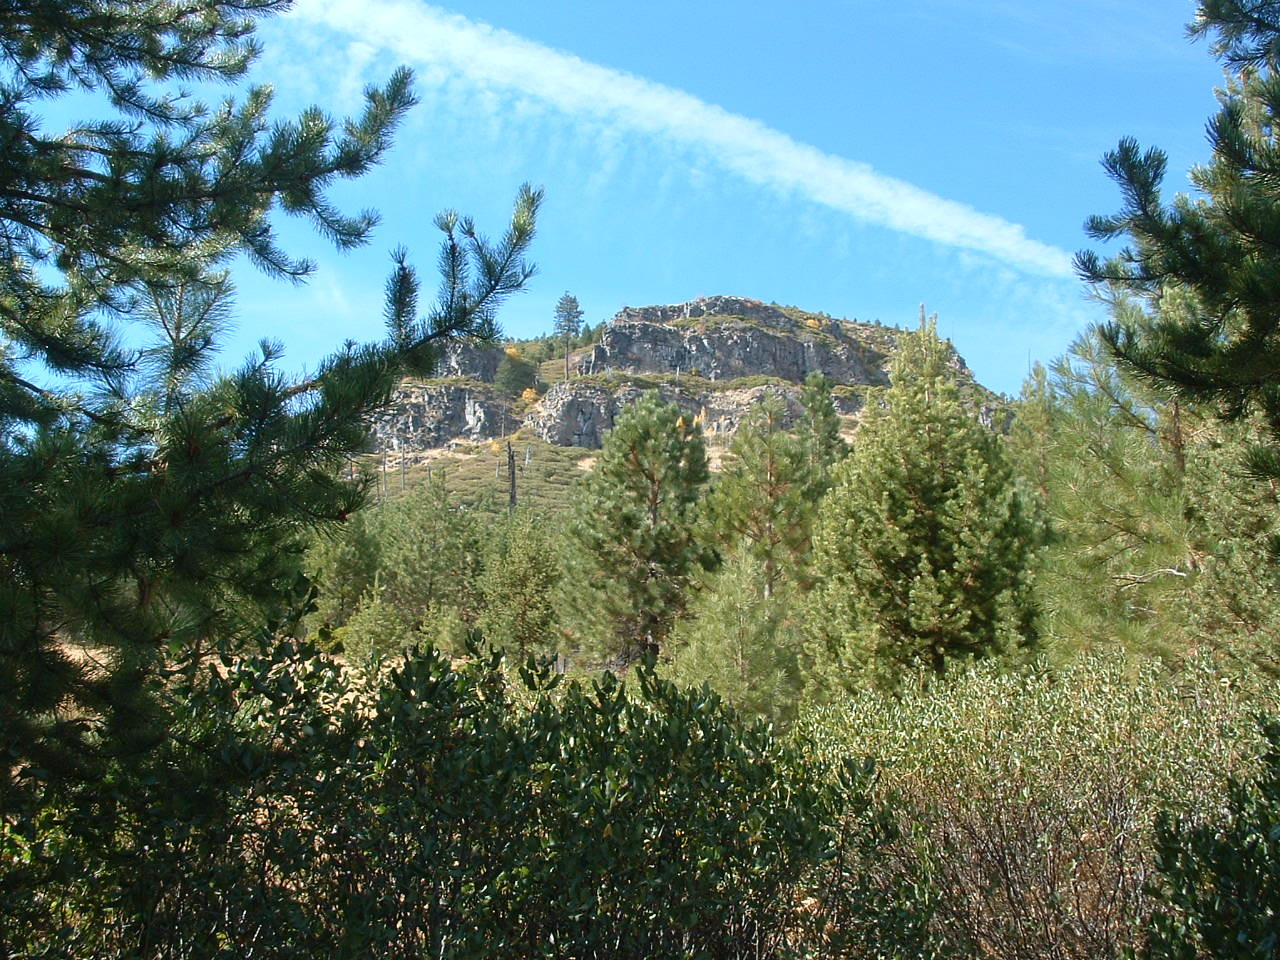 Tumalo Butte in late summer